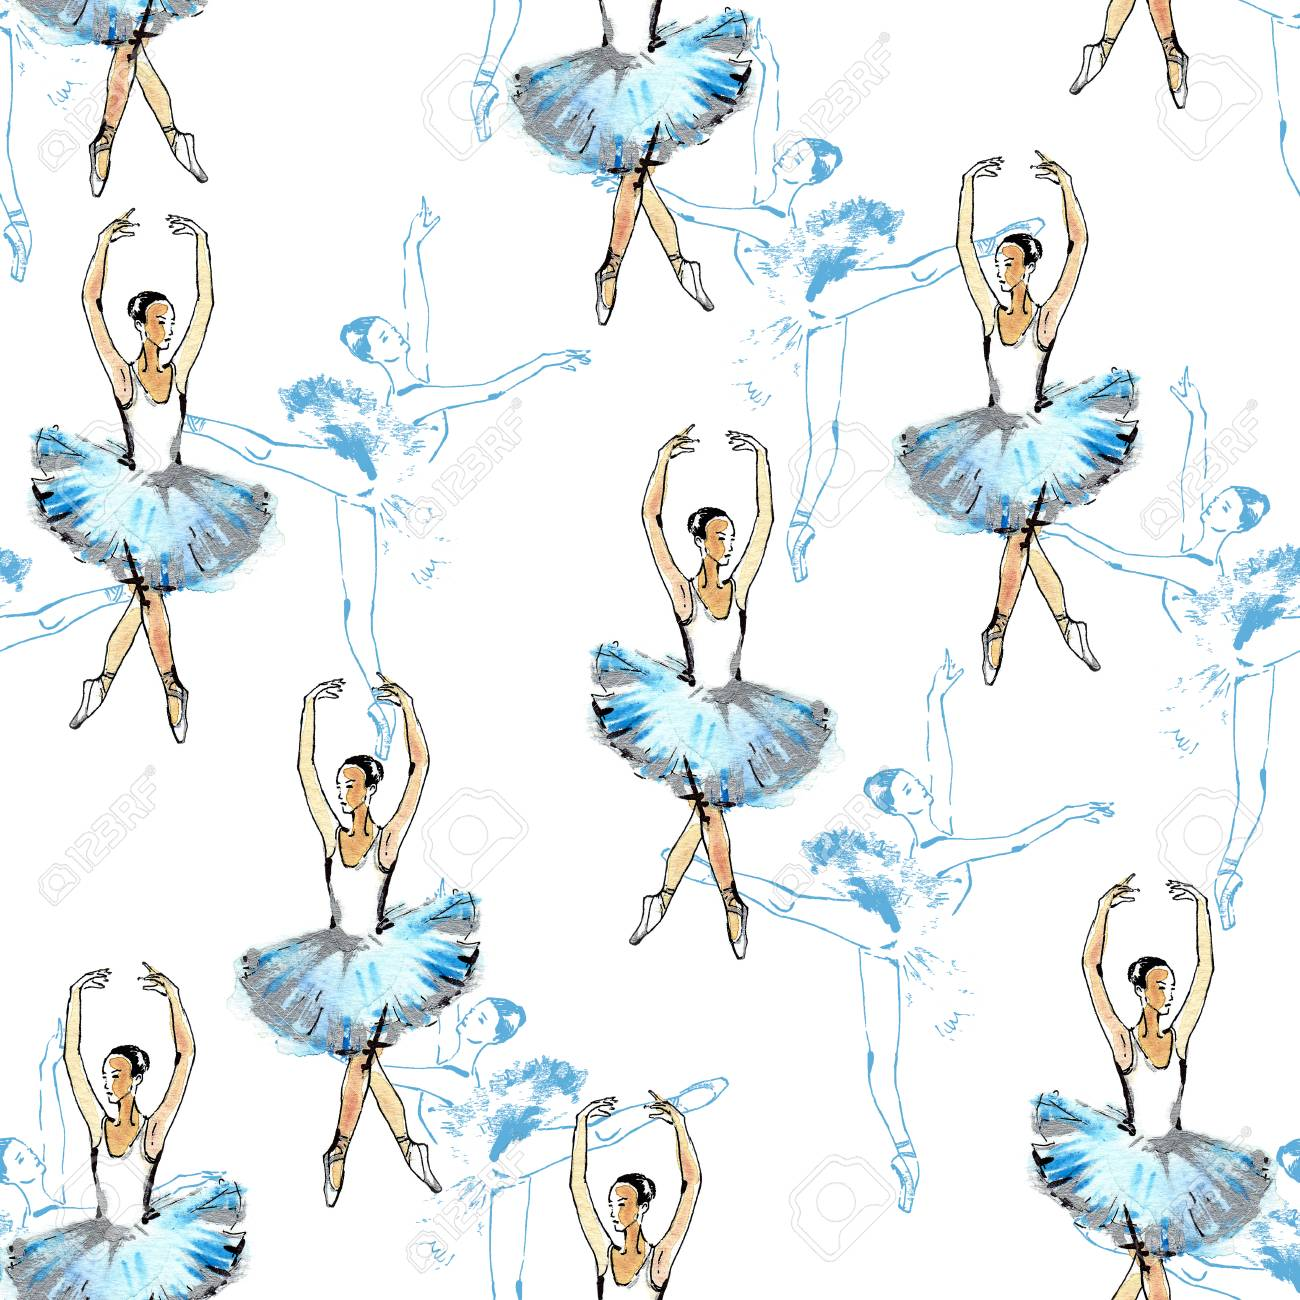 1300x1300 Seamless Pattern Of Ballet Dancers, Black, Blue And Silver Drawing